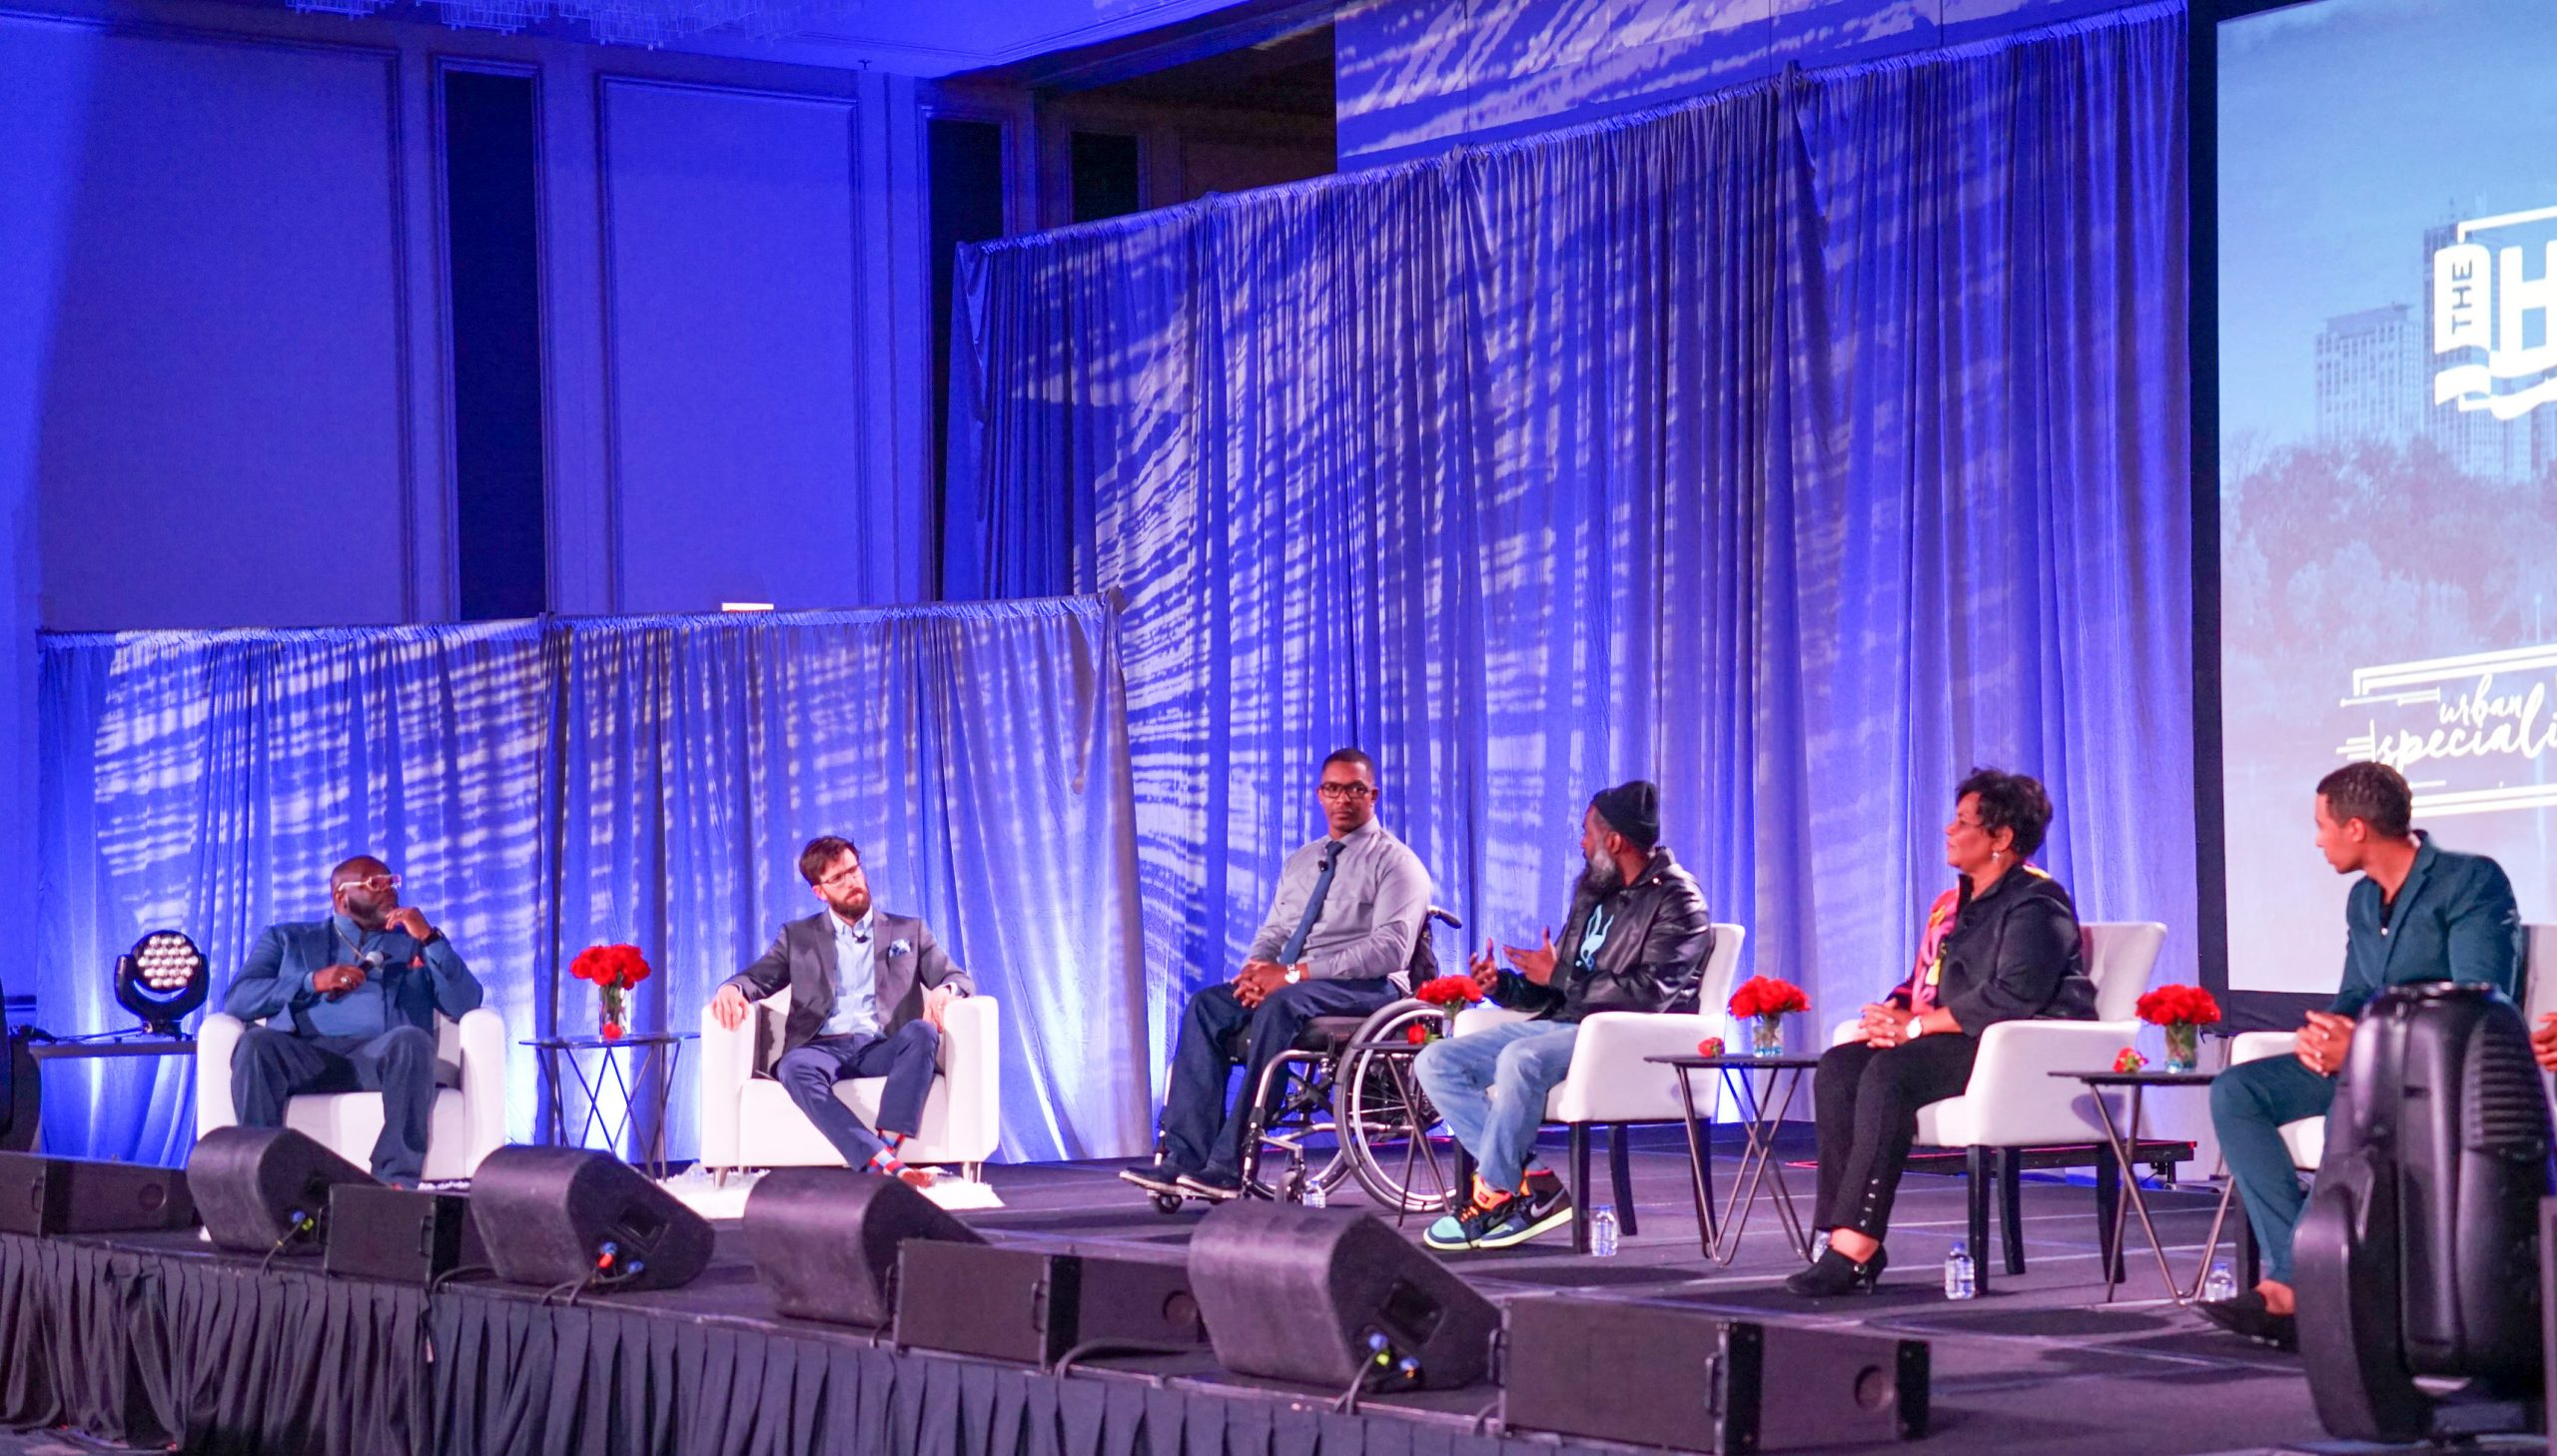 You are currently viewing 'Heal America' tour holds event in Chicago, focuses on education and humanity